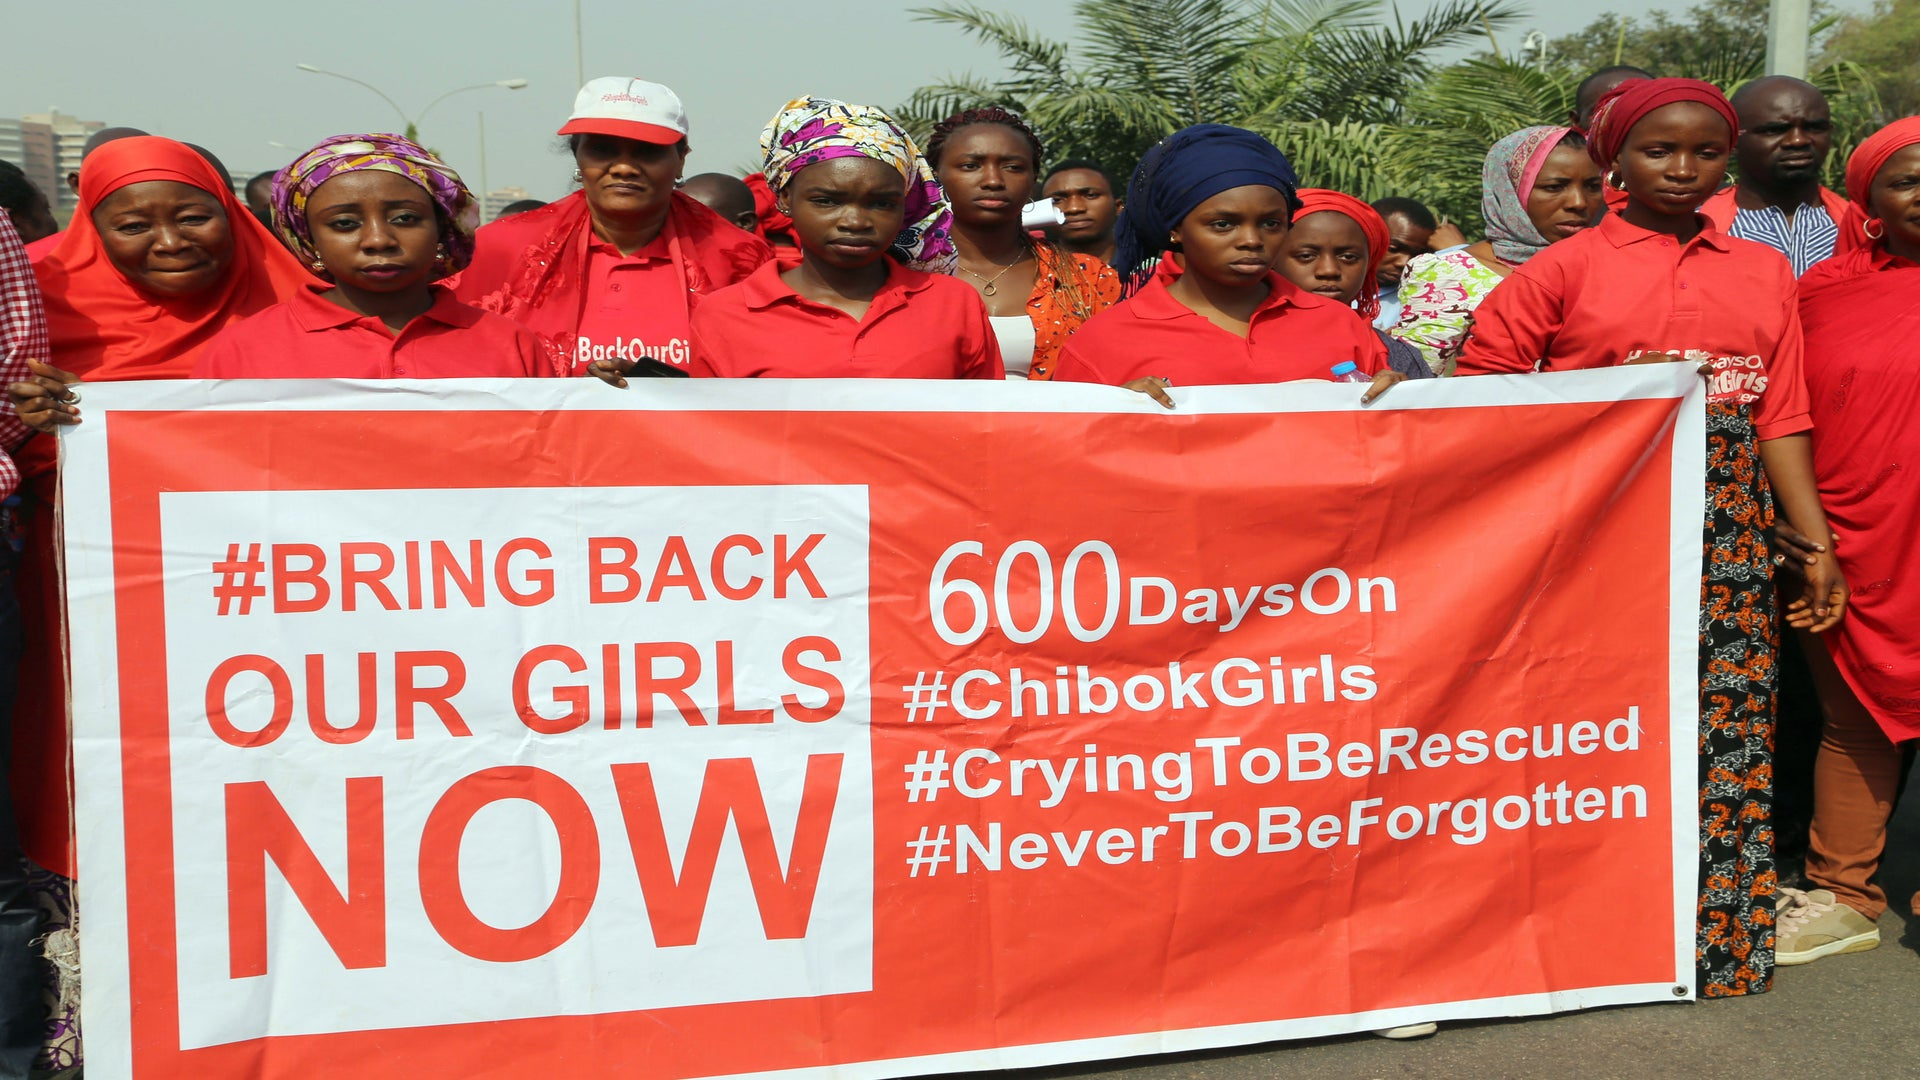 One Of The Chibok School Girls Kidnapped By Boko Haram Has Been Found Safe